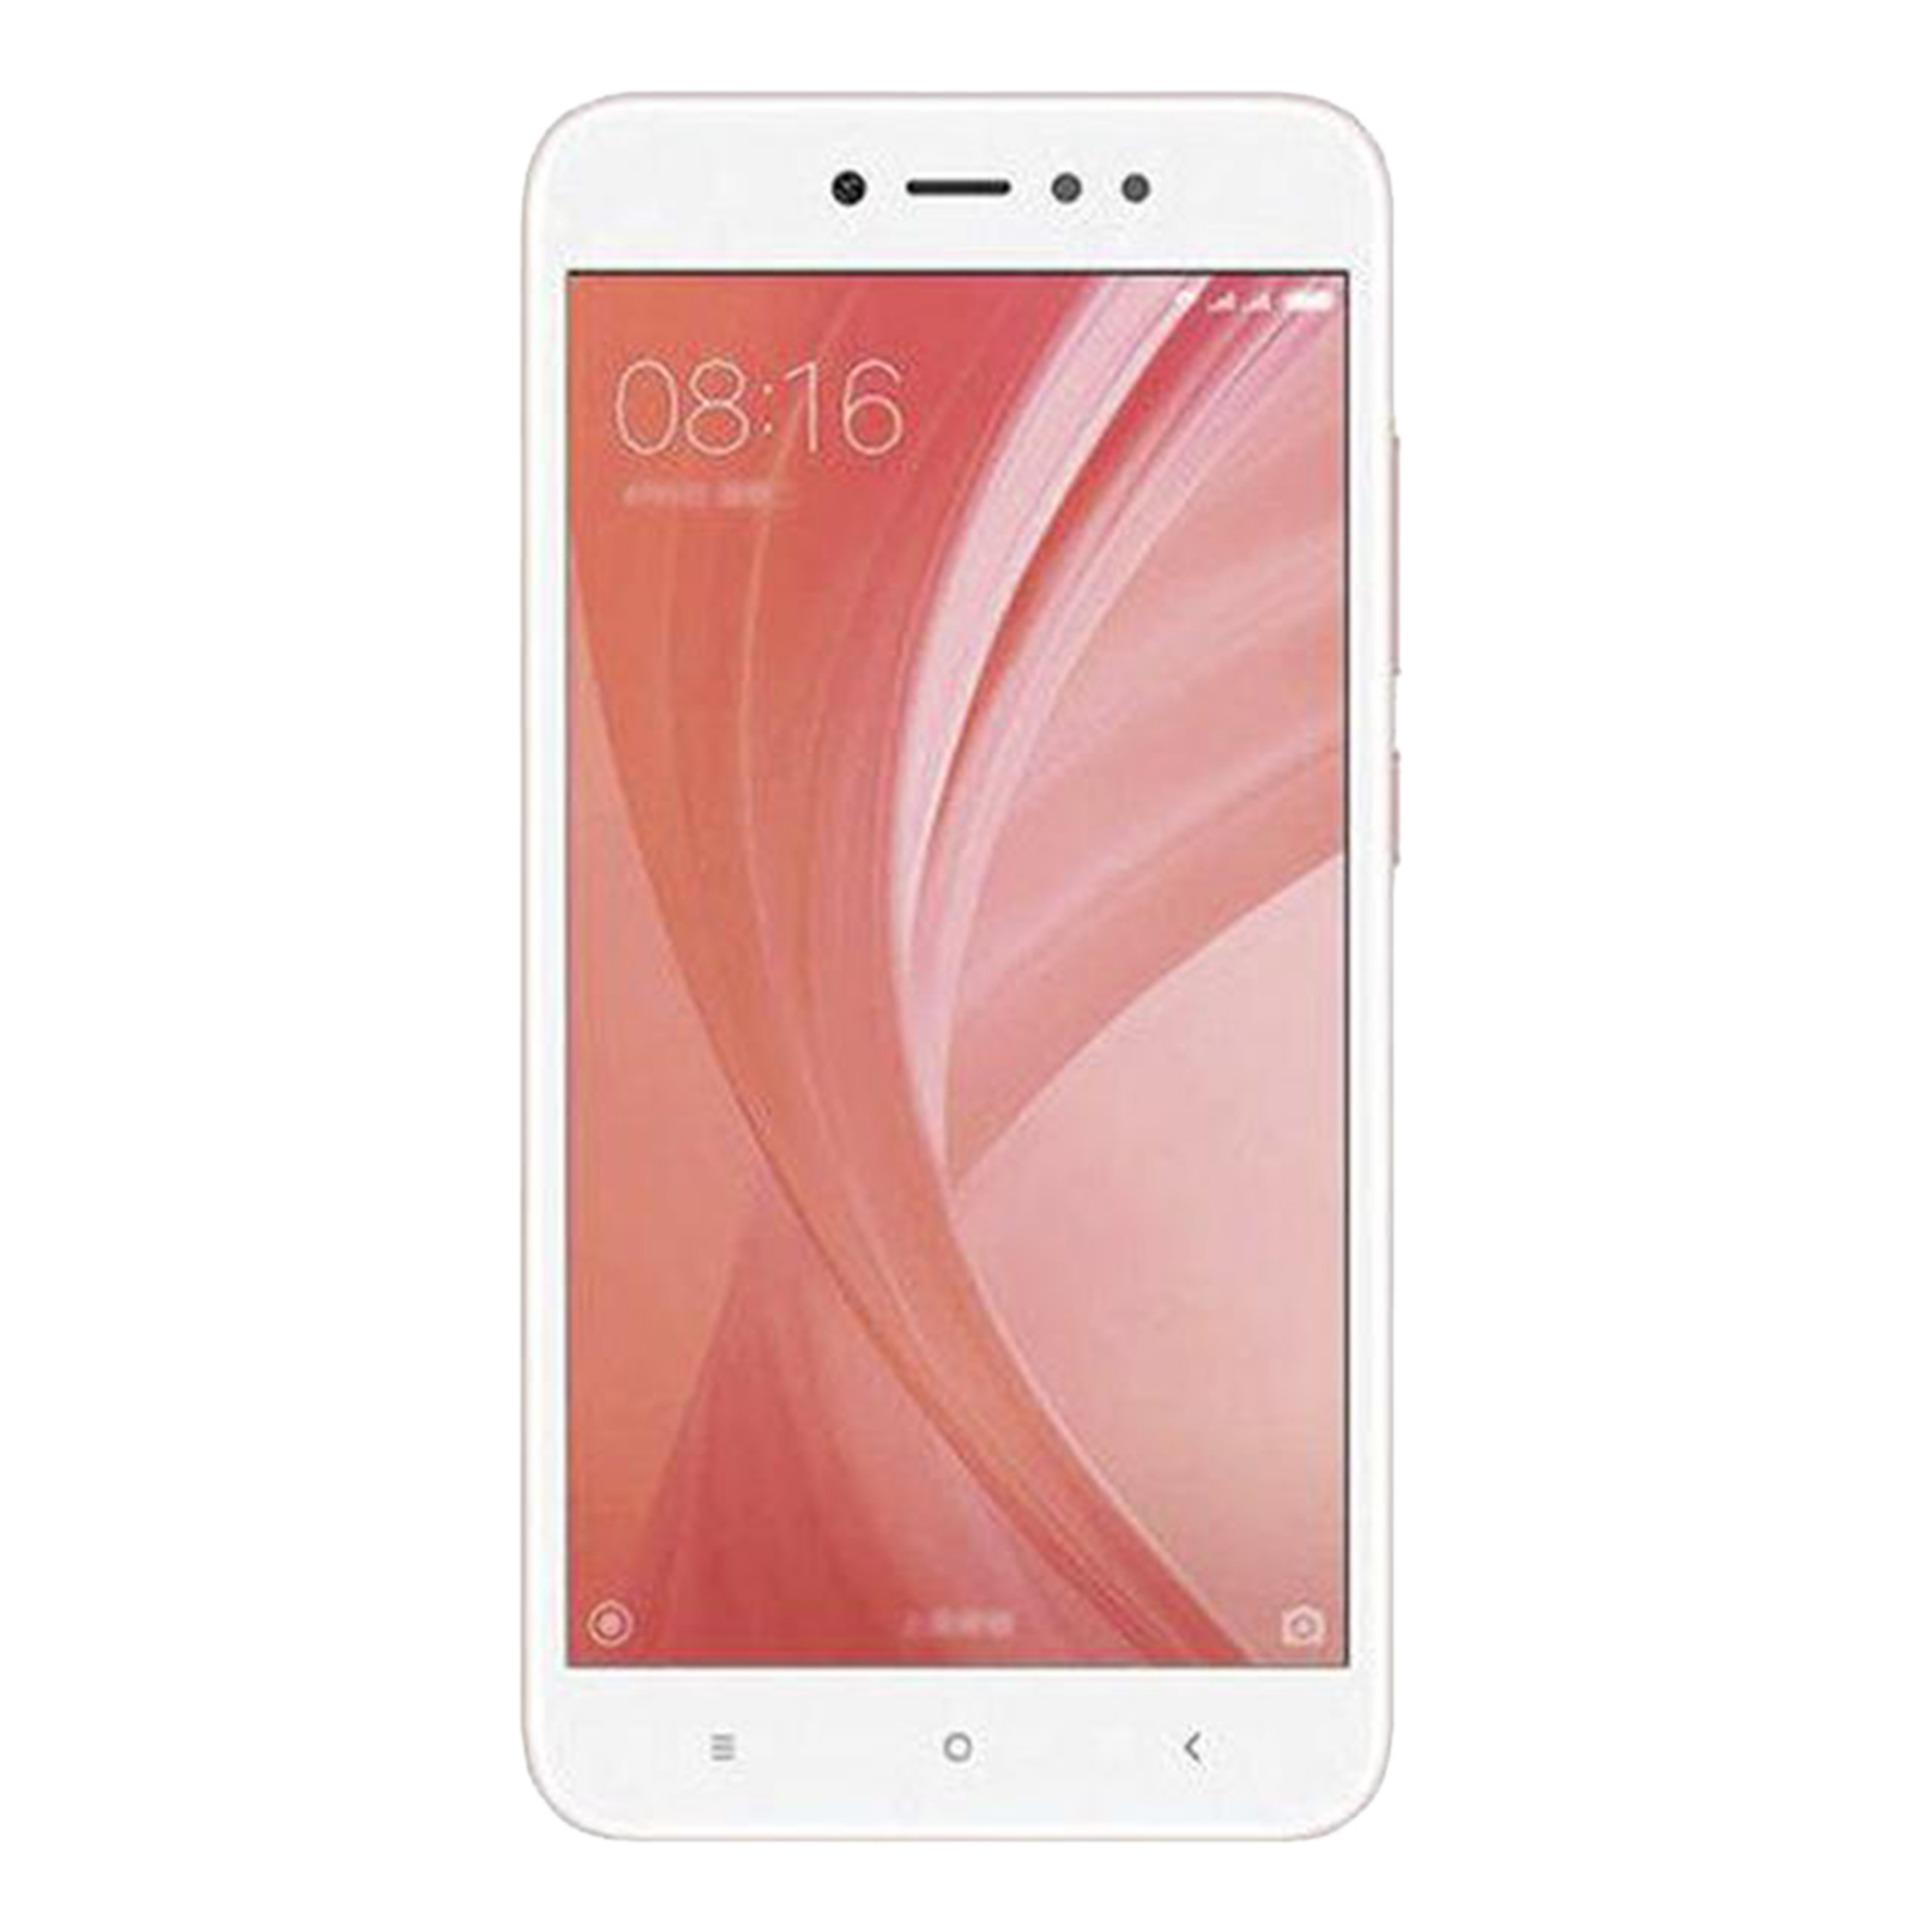 Xiaomi Mobile Phone In Bangladesh At Best Price Redmi 3s Prime 3gb 32gb Gold Note 5a Smartphone 55 Ram Rom